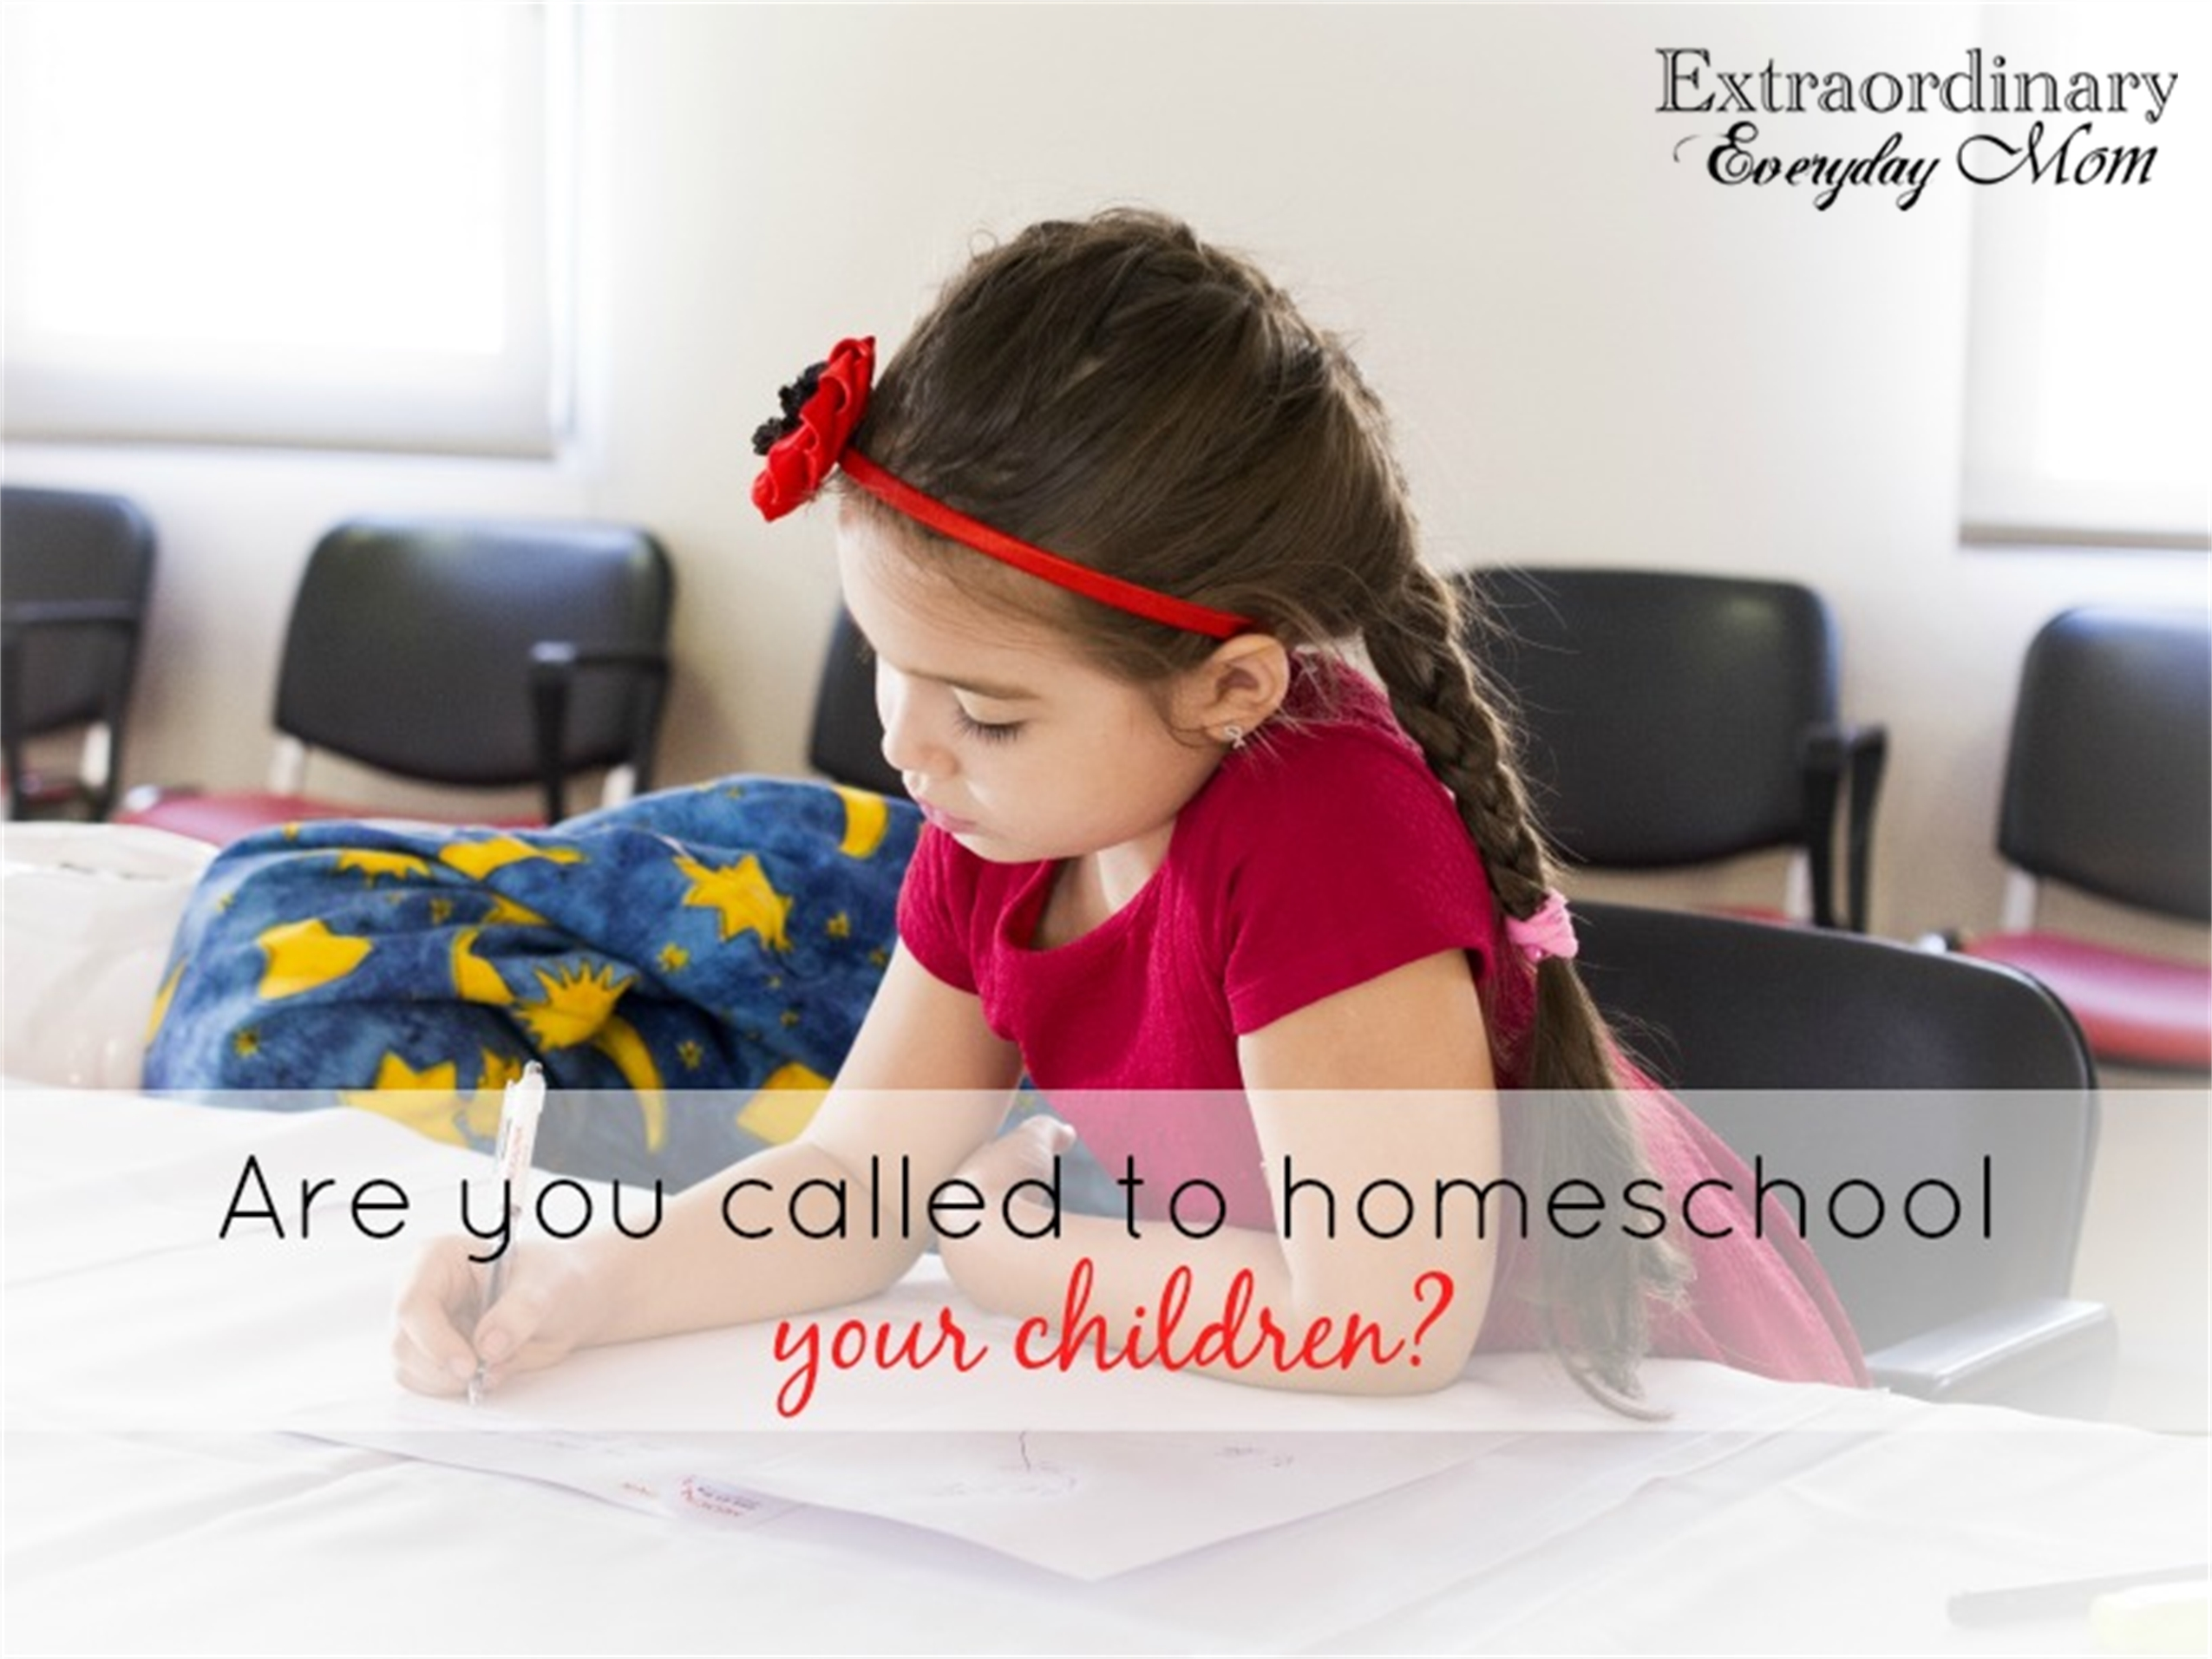 Are you called to homeschool your children?